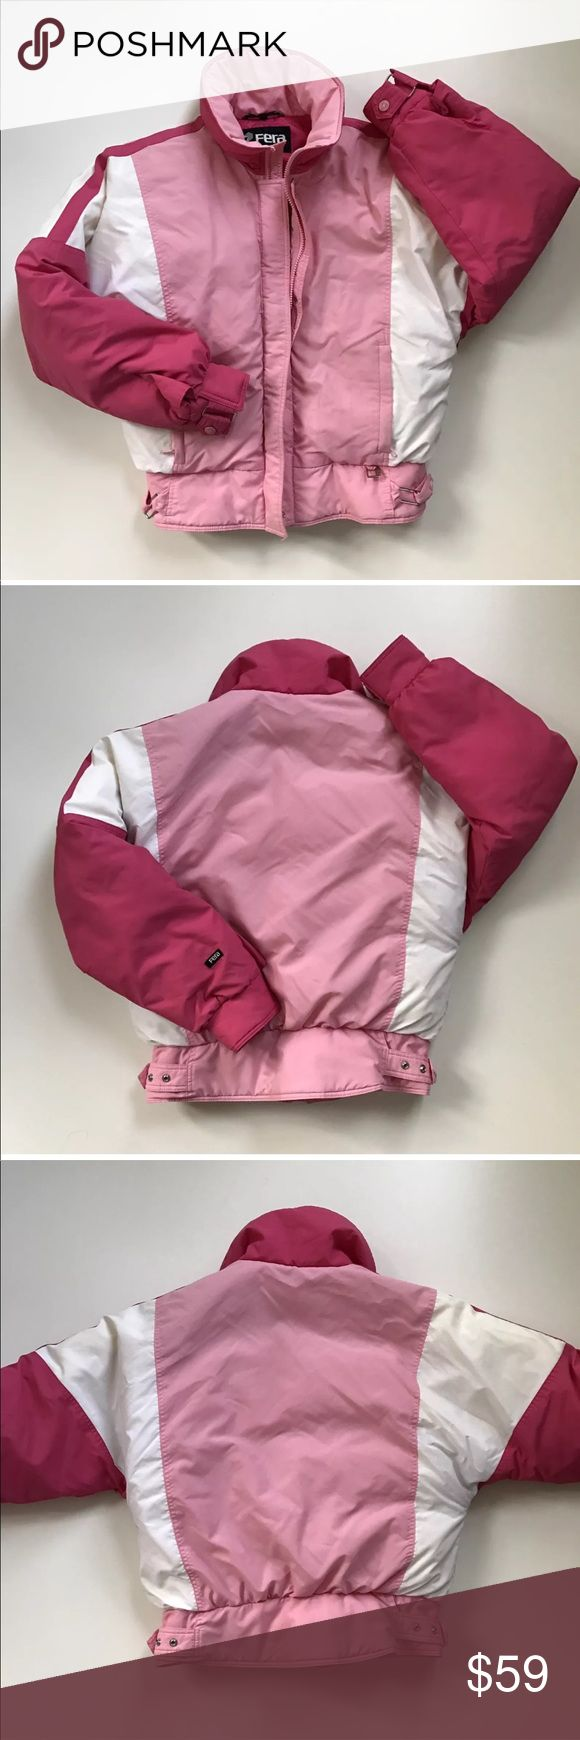 Vintage FERA Down Ski Jacket Women's Pink White This listing is for a vintage FERA down ski jacket. A mix of pinks with white. Features a zip up and snap front closure. Adjustable snap buckles at the hem. Inside zip up pocket. Retro design. Two outside front full zip pockets. Has a down fill and a nylon shell & lining. Size 12. Please note: some vintage sizes do not reflect modern sizes. Measurements taken with item laying flat and fully zipped close. Chest: 22 inches straight across Length…